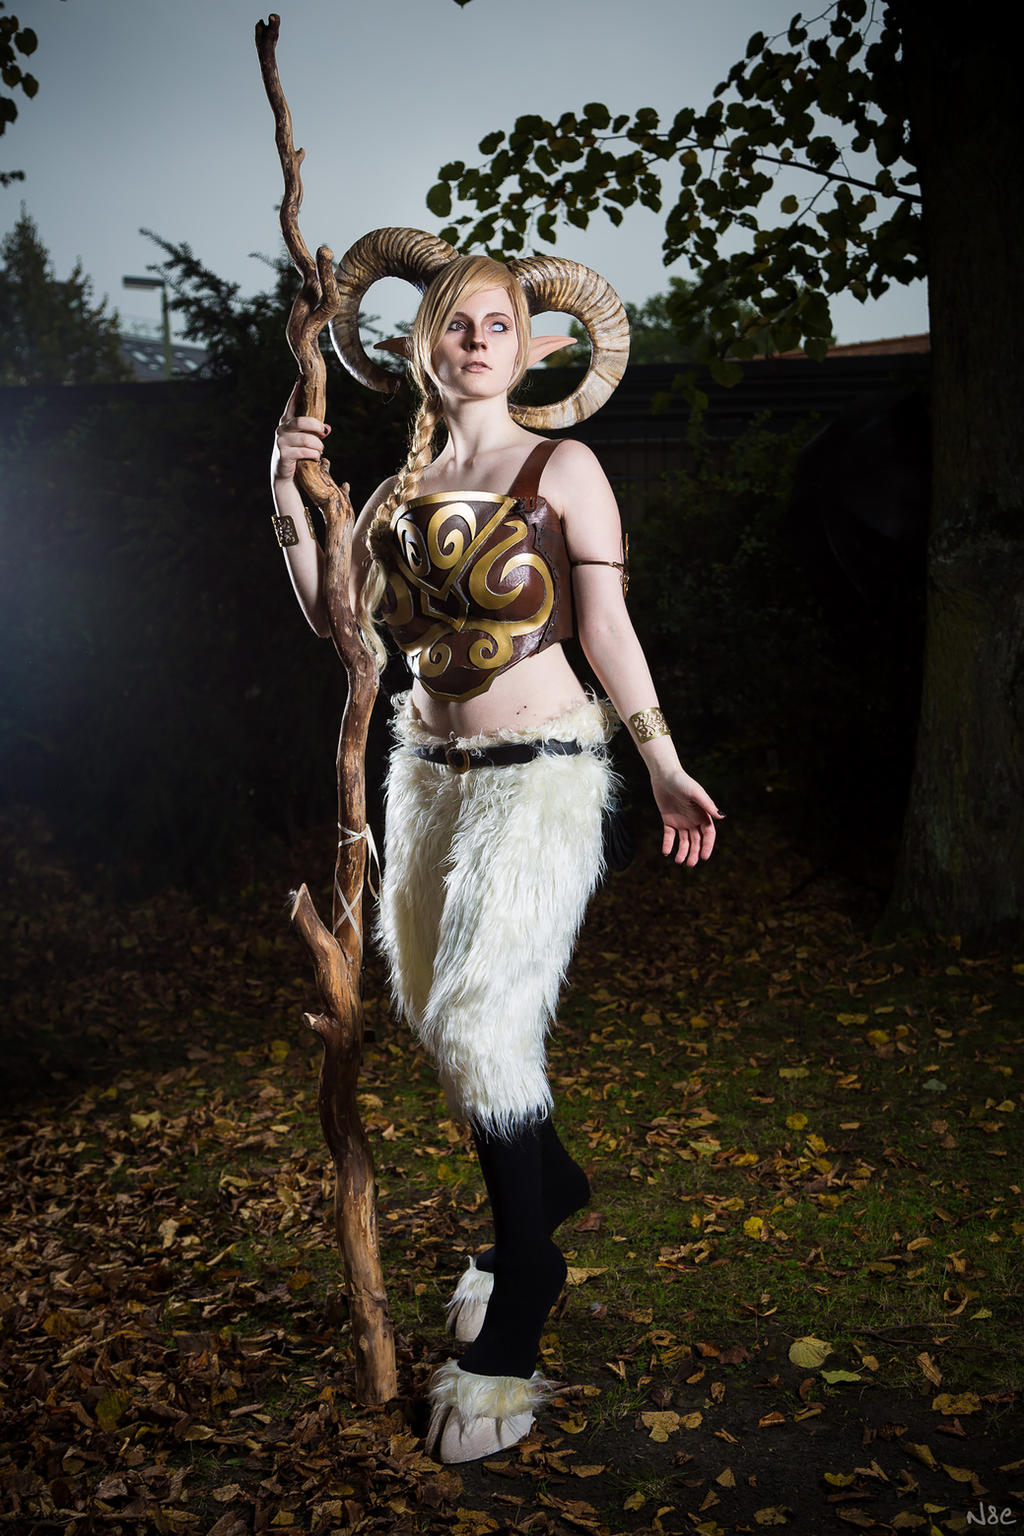 19 best images about Faun Cosplay on Pinterest | Awesome ... |Faun Cosplay